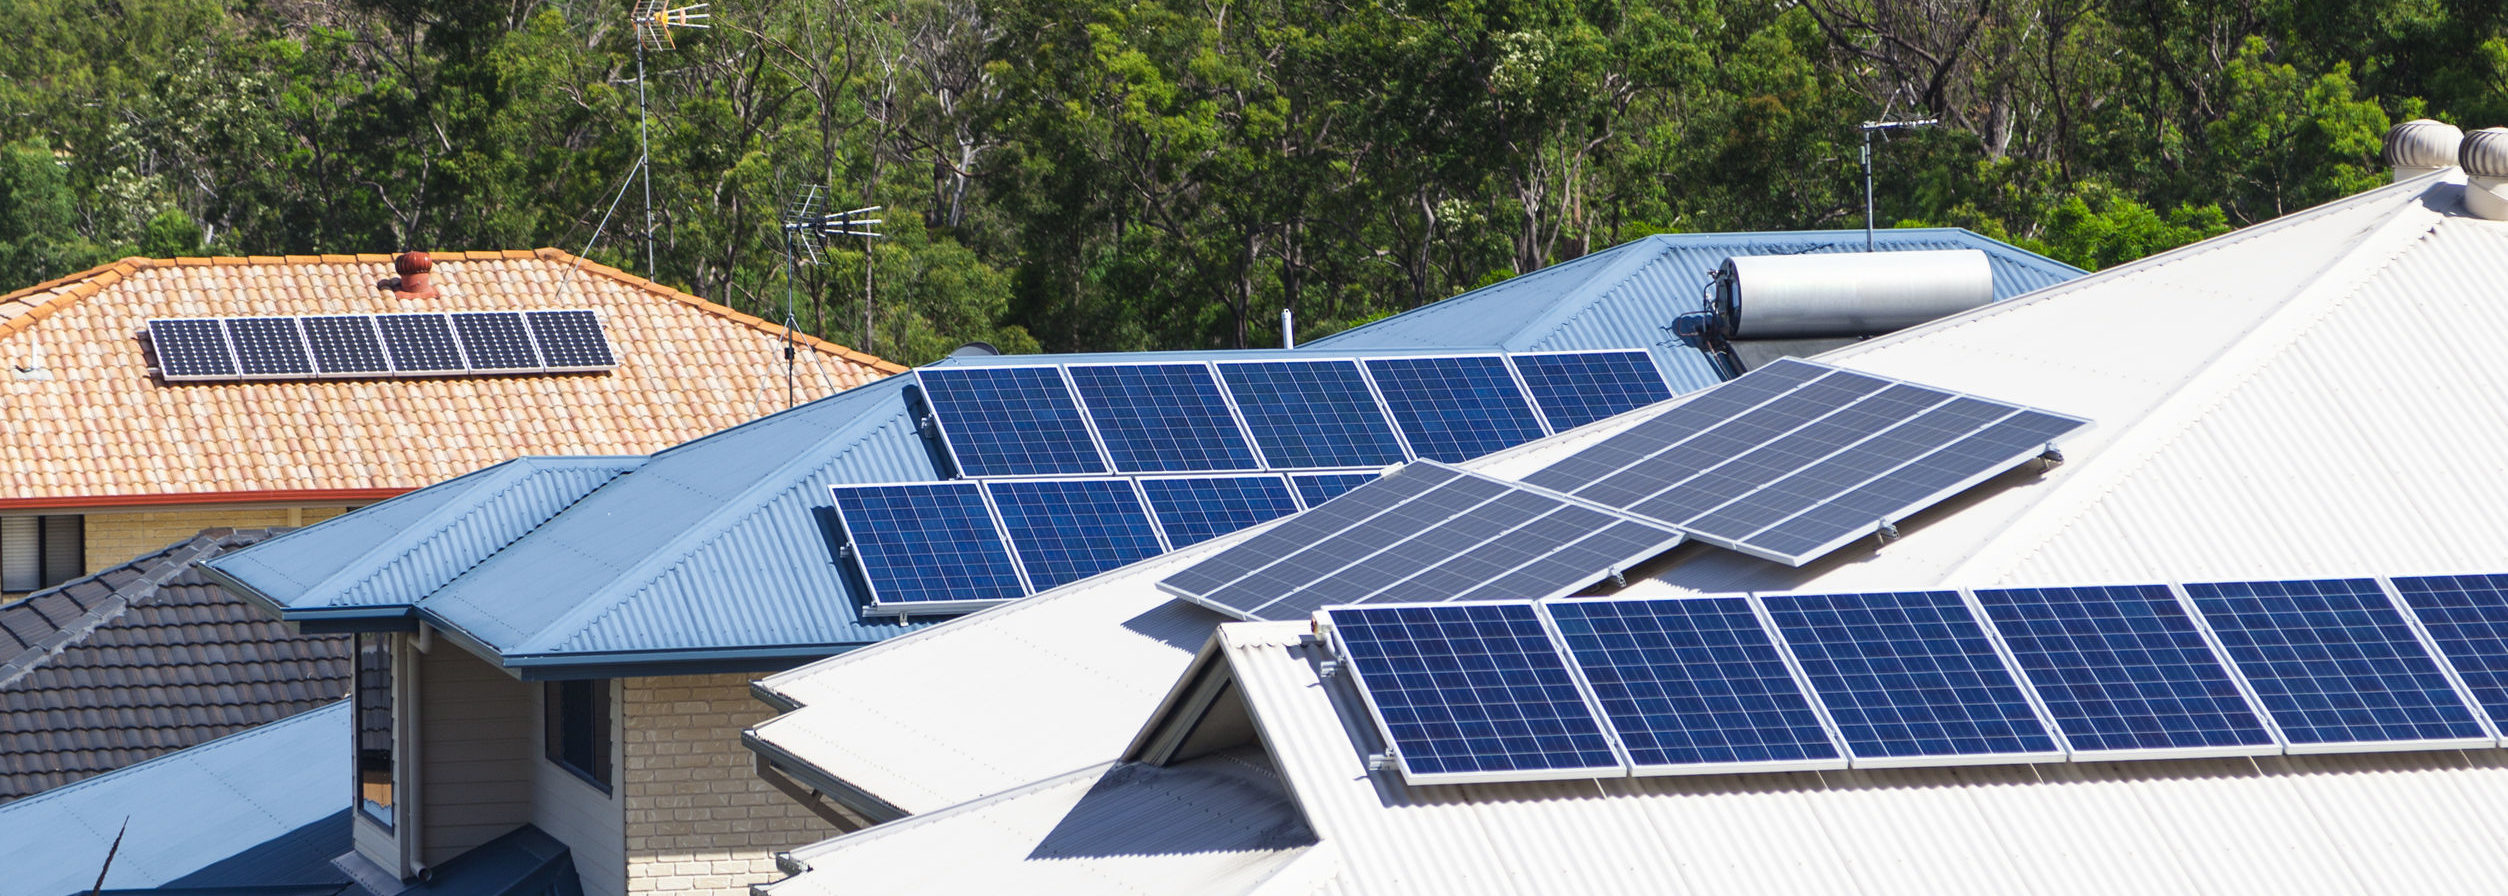 Australia is the world leader in residential rooftop solar